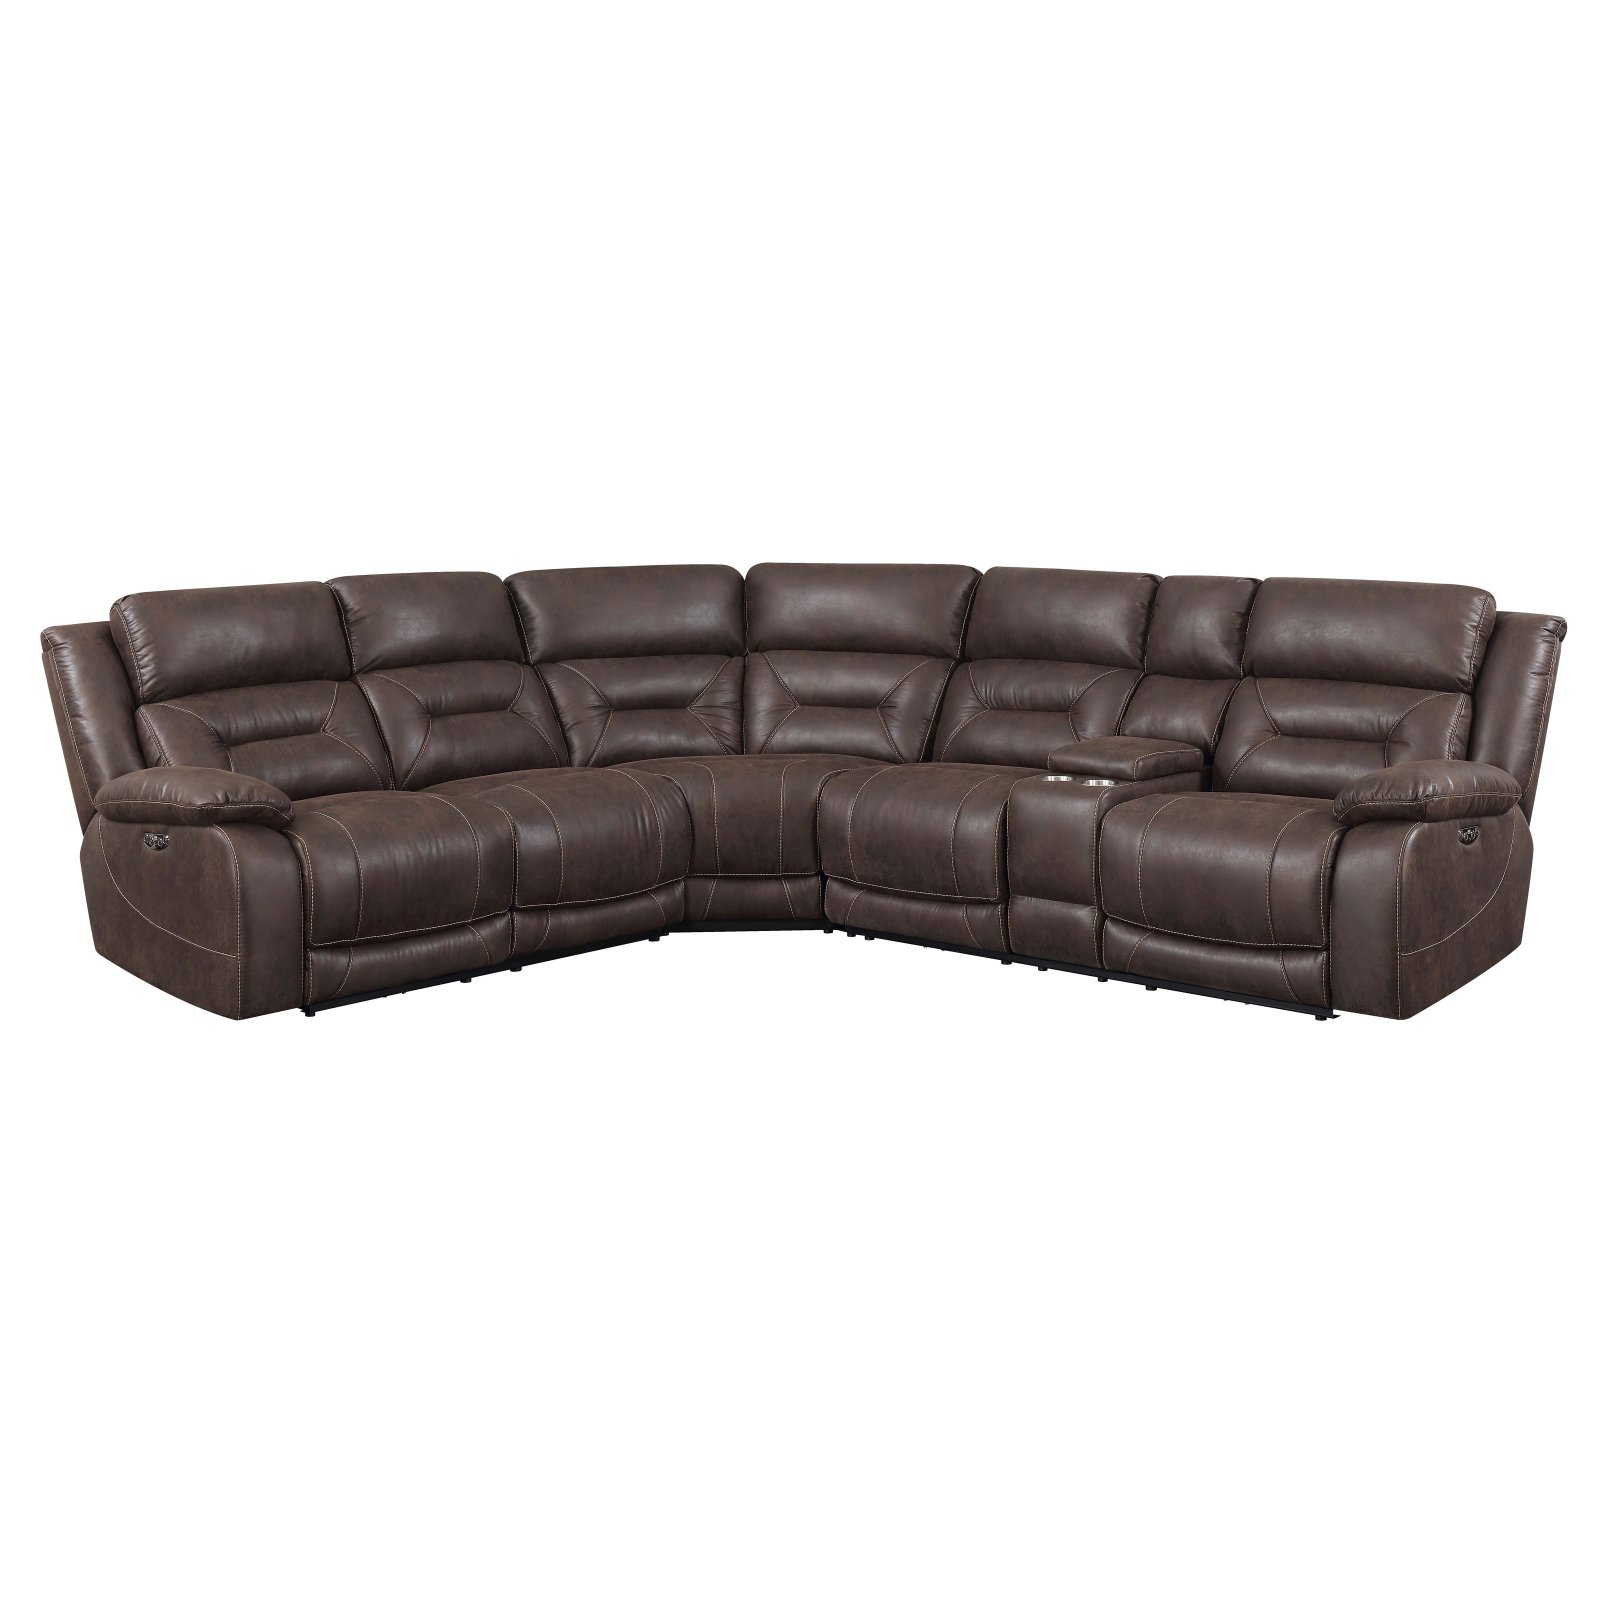 Steve Silver Co. Aria 3 Piece Upholstered Reclining Sectional Sofa